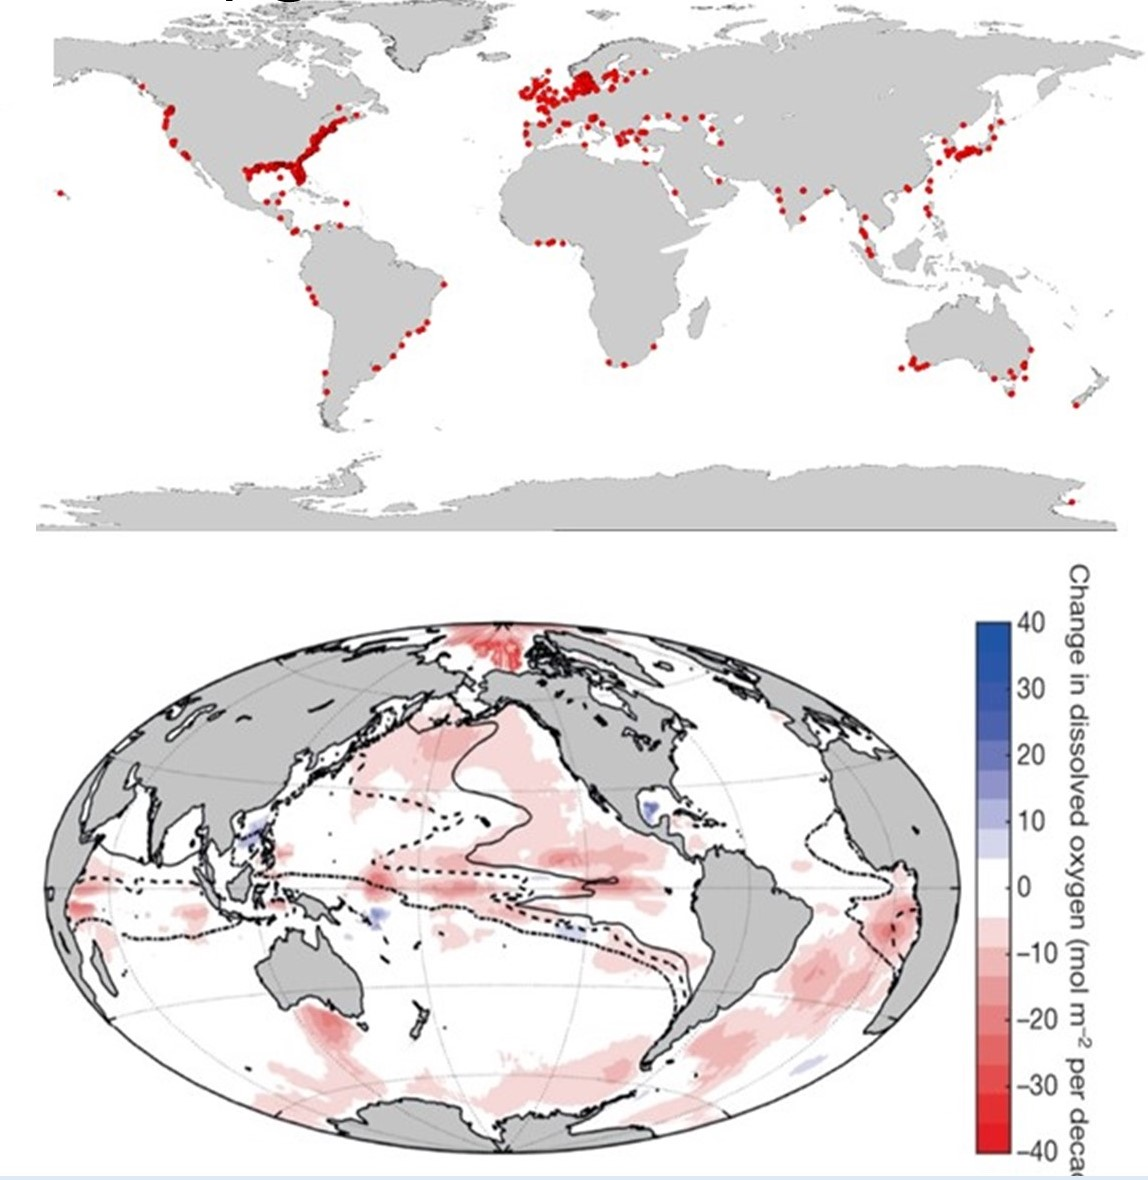 Figure showing coastal deoxygenation spots and global changes in deoxygenation